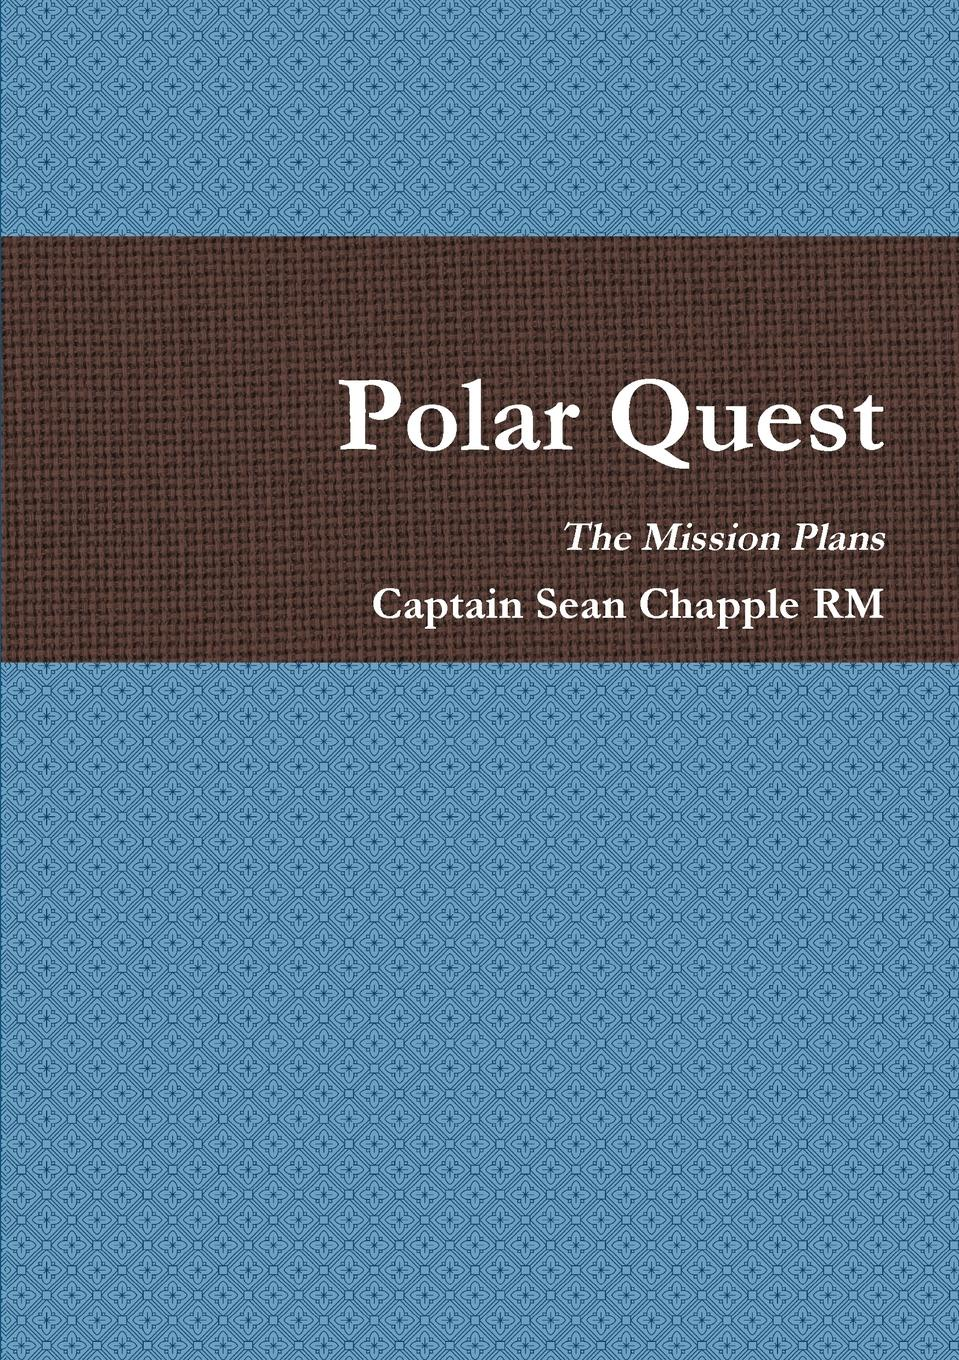 калейдоскоп the captain Captain Sean Chapple RM Polar Quest - Mission Plans